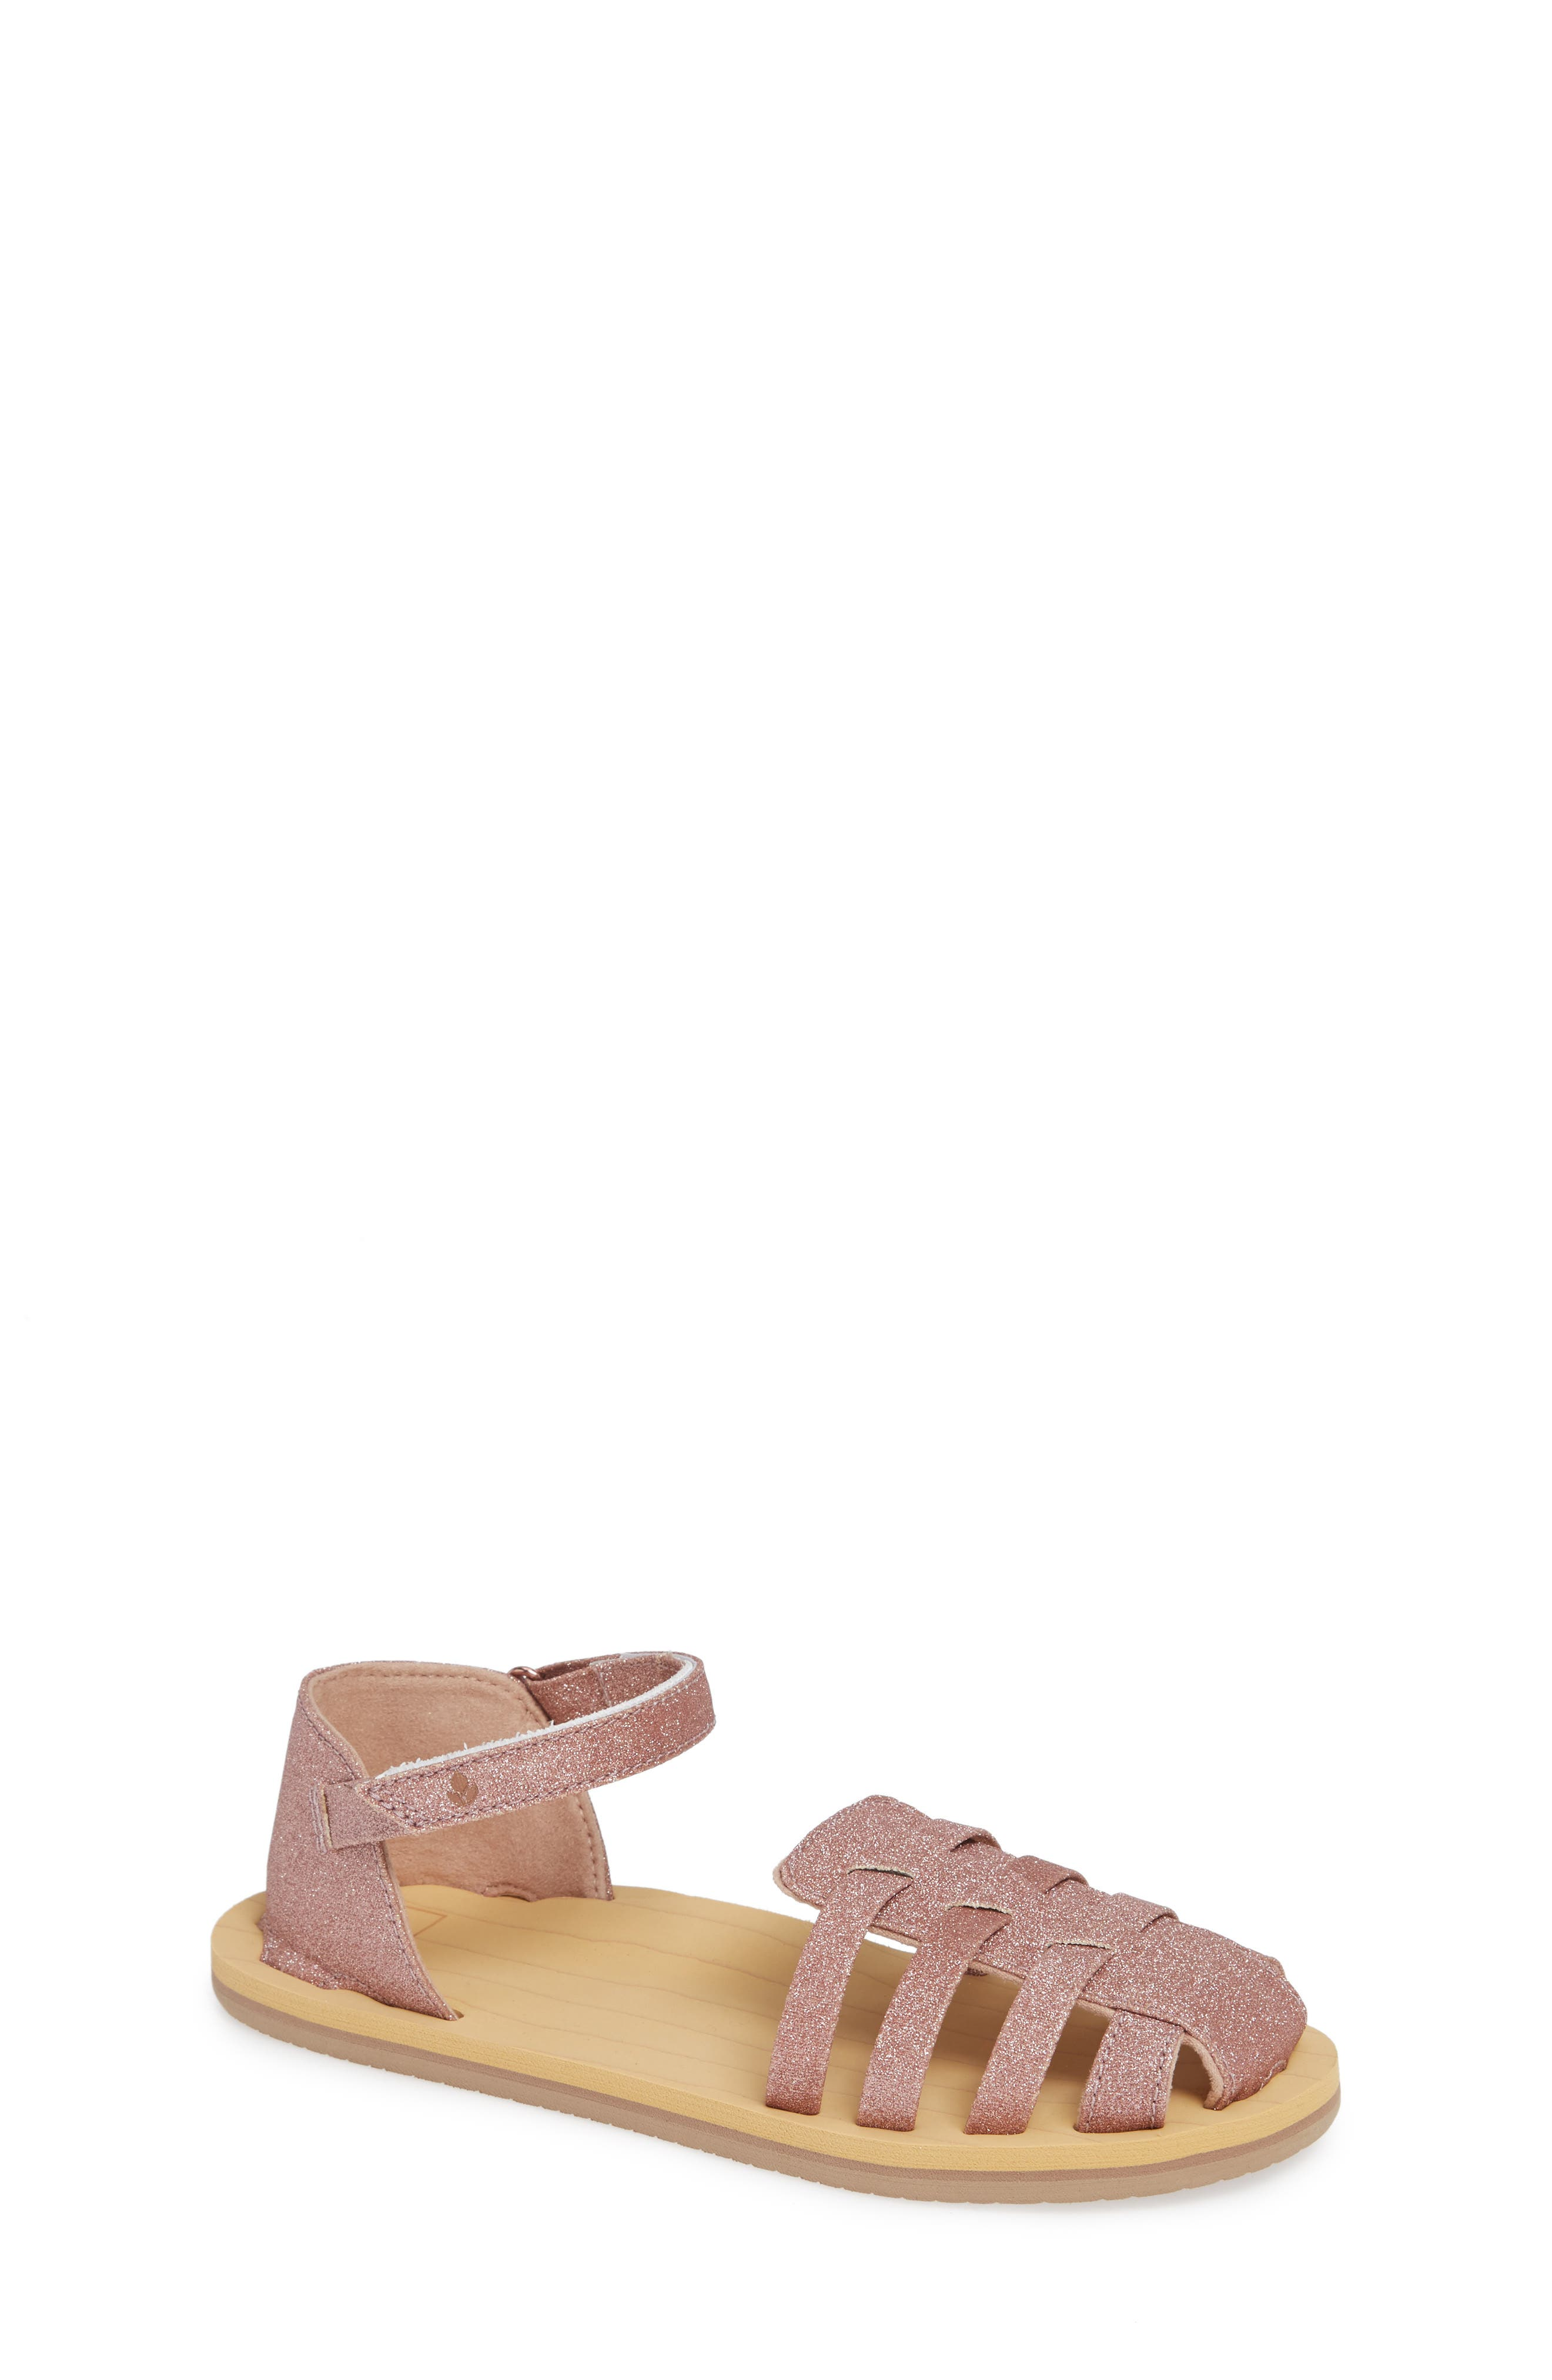 REEF Little Reef Prep Glitter Fisherman Sandal, Main, color, ROSE